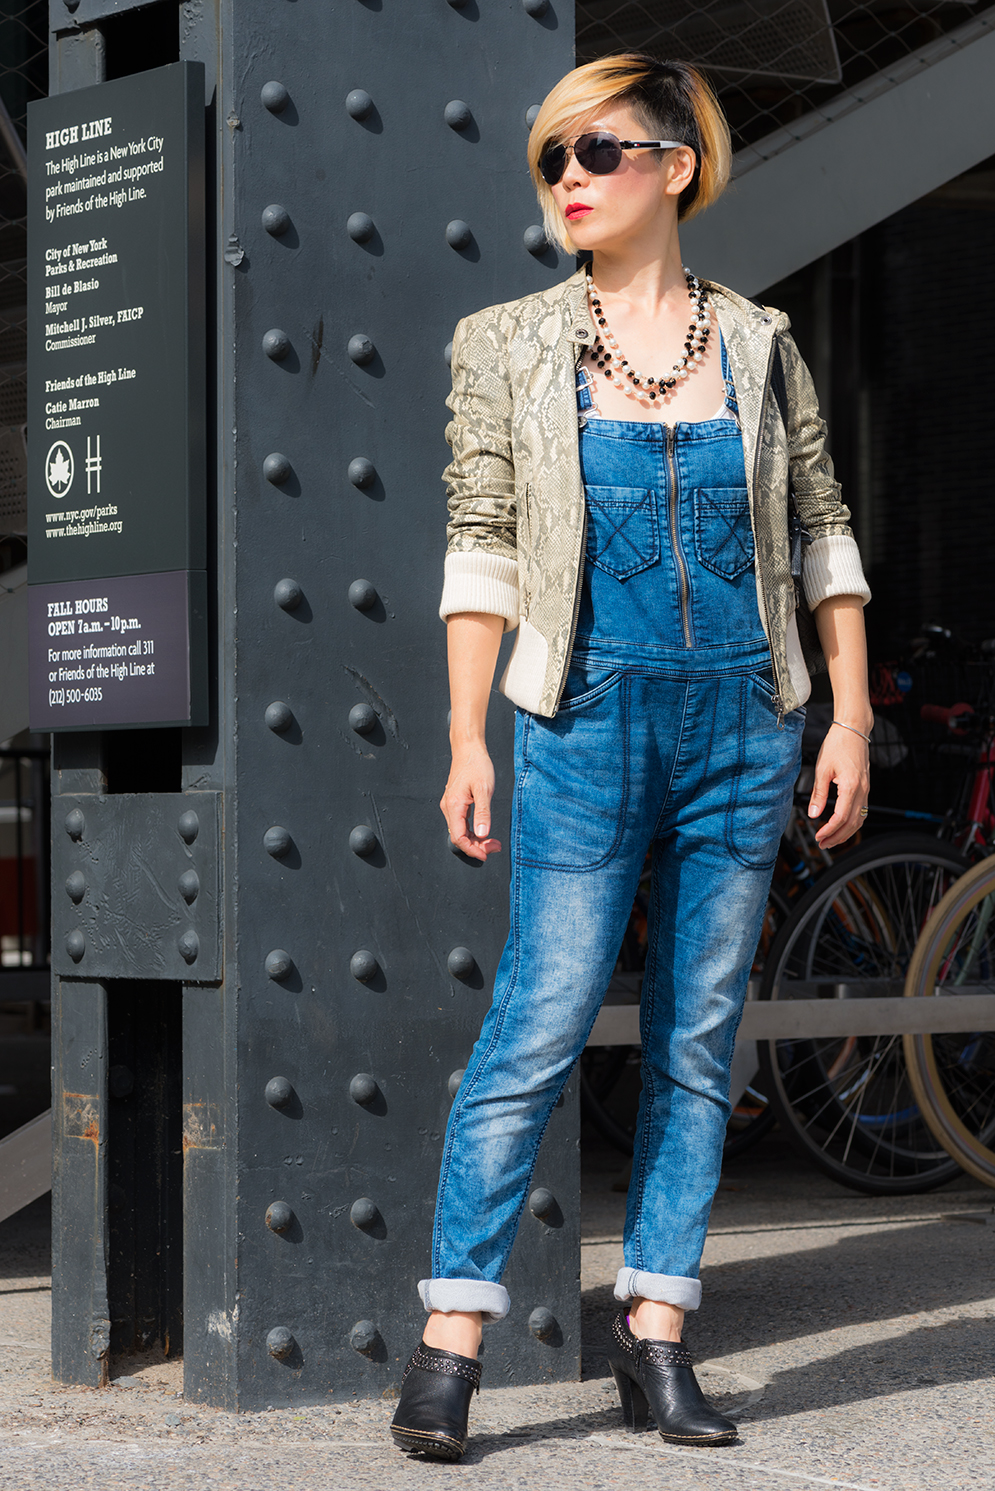 ROCK MAMA NYC LIFESTYLE BLOG - overalls for 2015